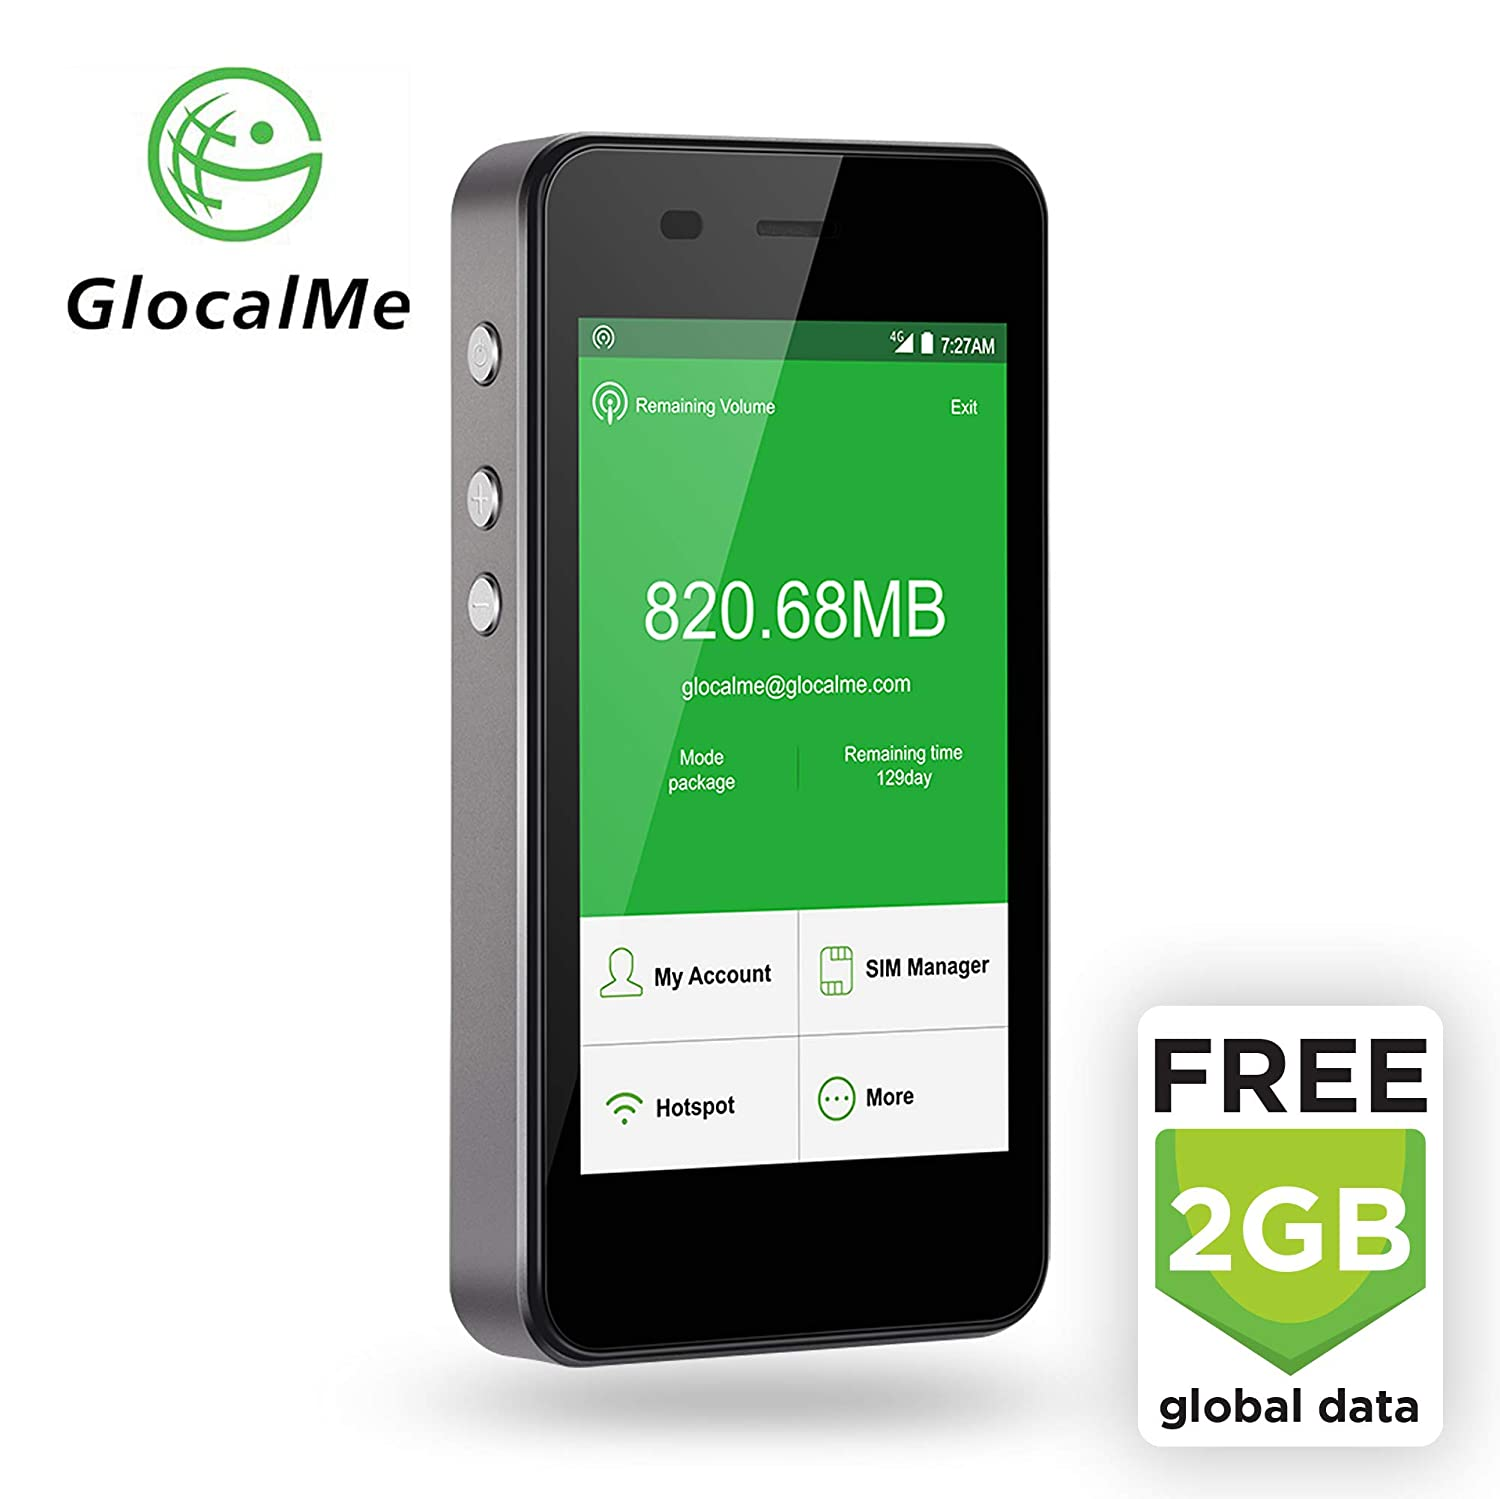 GlocalMe G3 LTE Global Mobile Hotspot Wi-Fi with 2GB Global Initial Data, SIM Free, for Internet Coverage in Over 100 Countries, Compatible with Smartphones, Tablets, Laptops and More - (Grey)